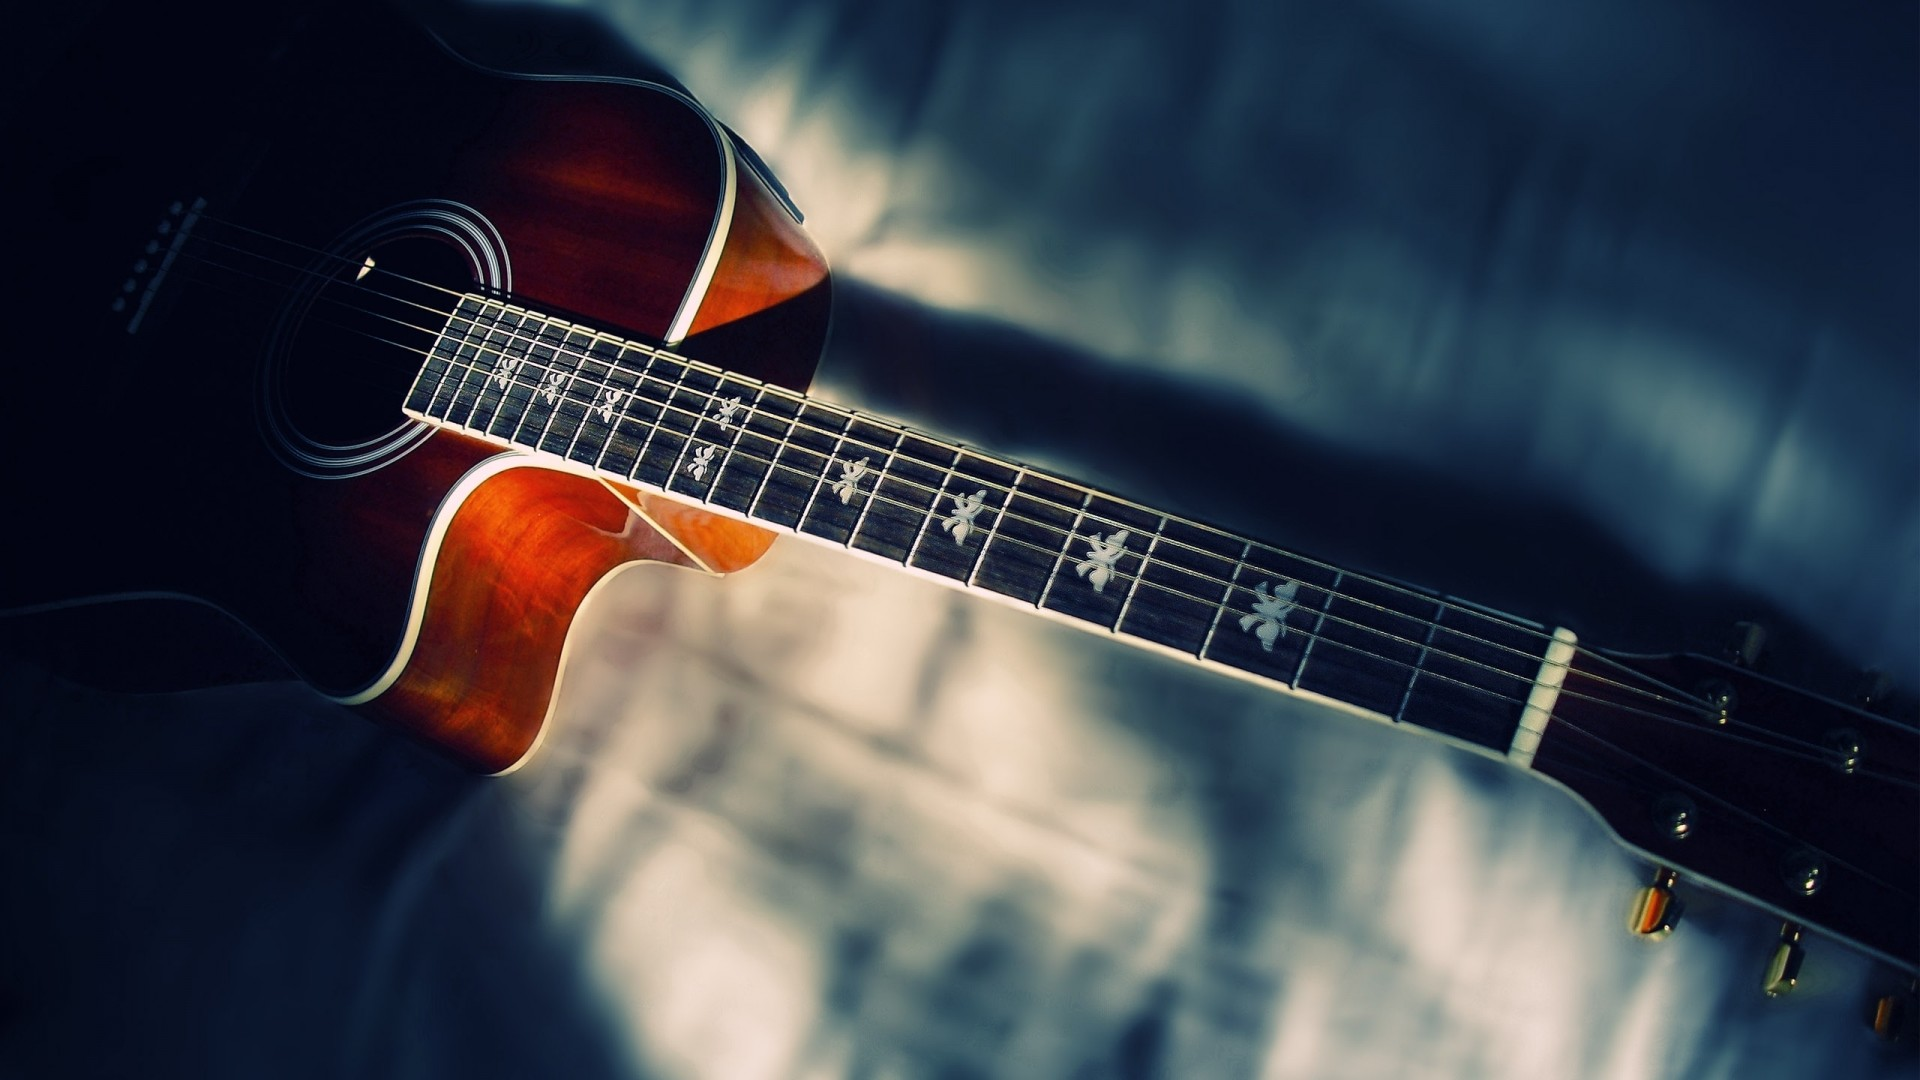 1920x1080 guitar backgrounds desktop photo cool images high definition tablet  background wallpapers colourful pictures mac desktop images samsung phone  wallpapers ...